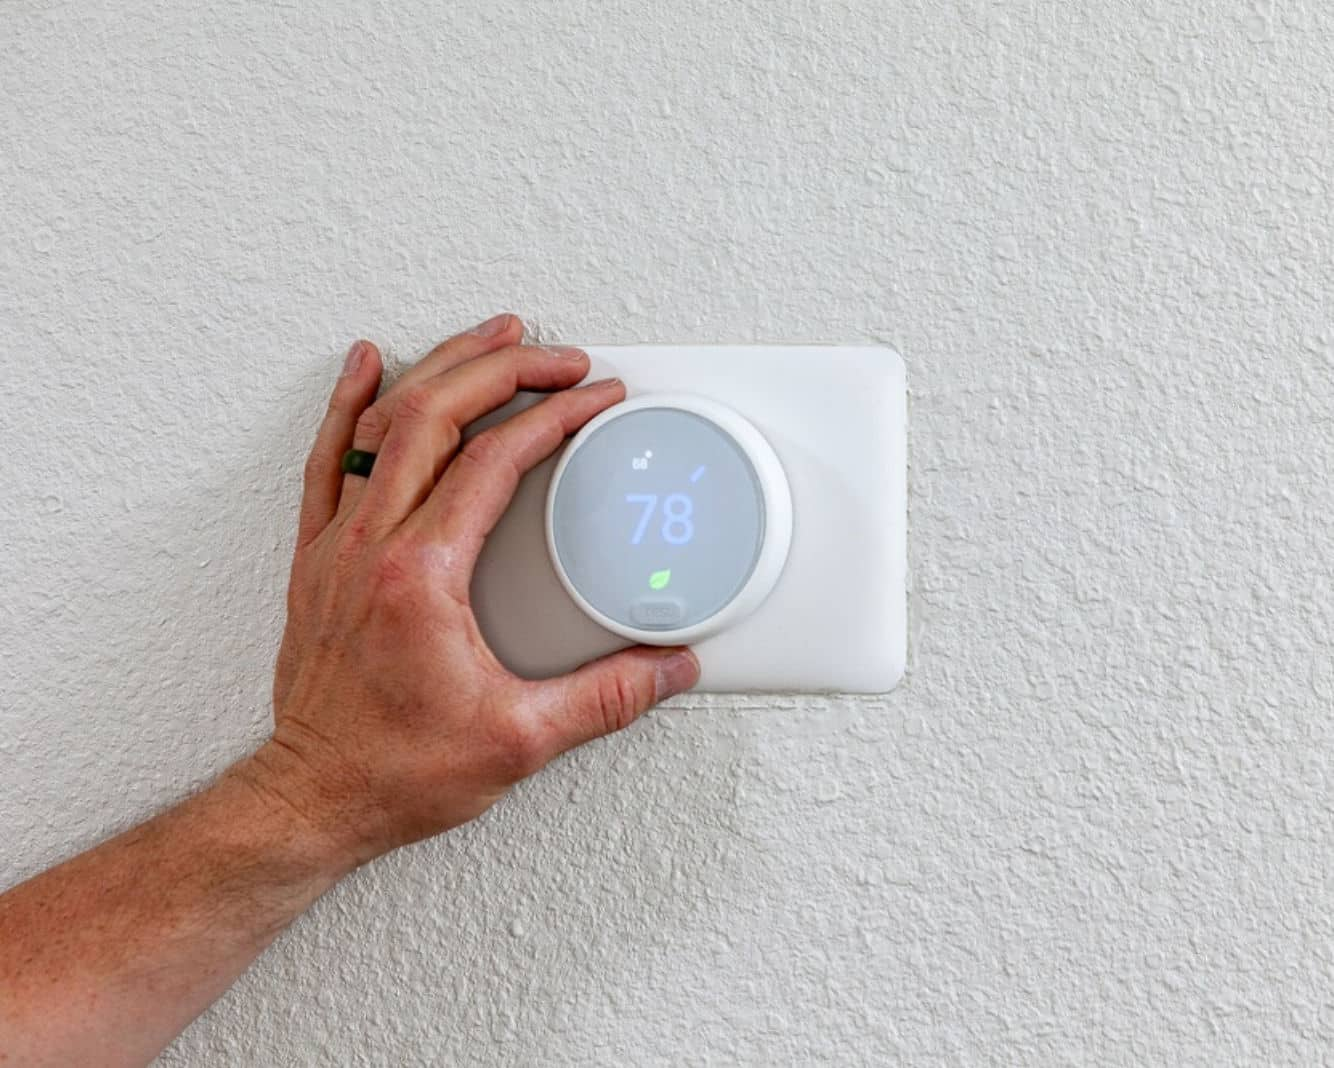 A hand turning a Nest Thermostat